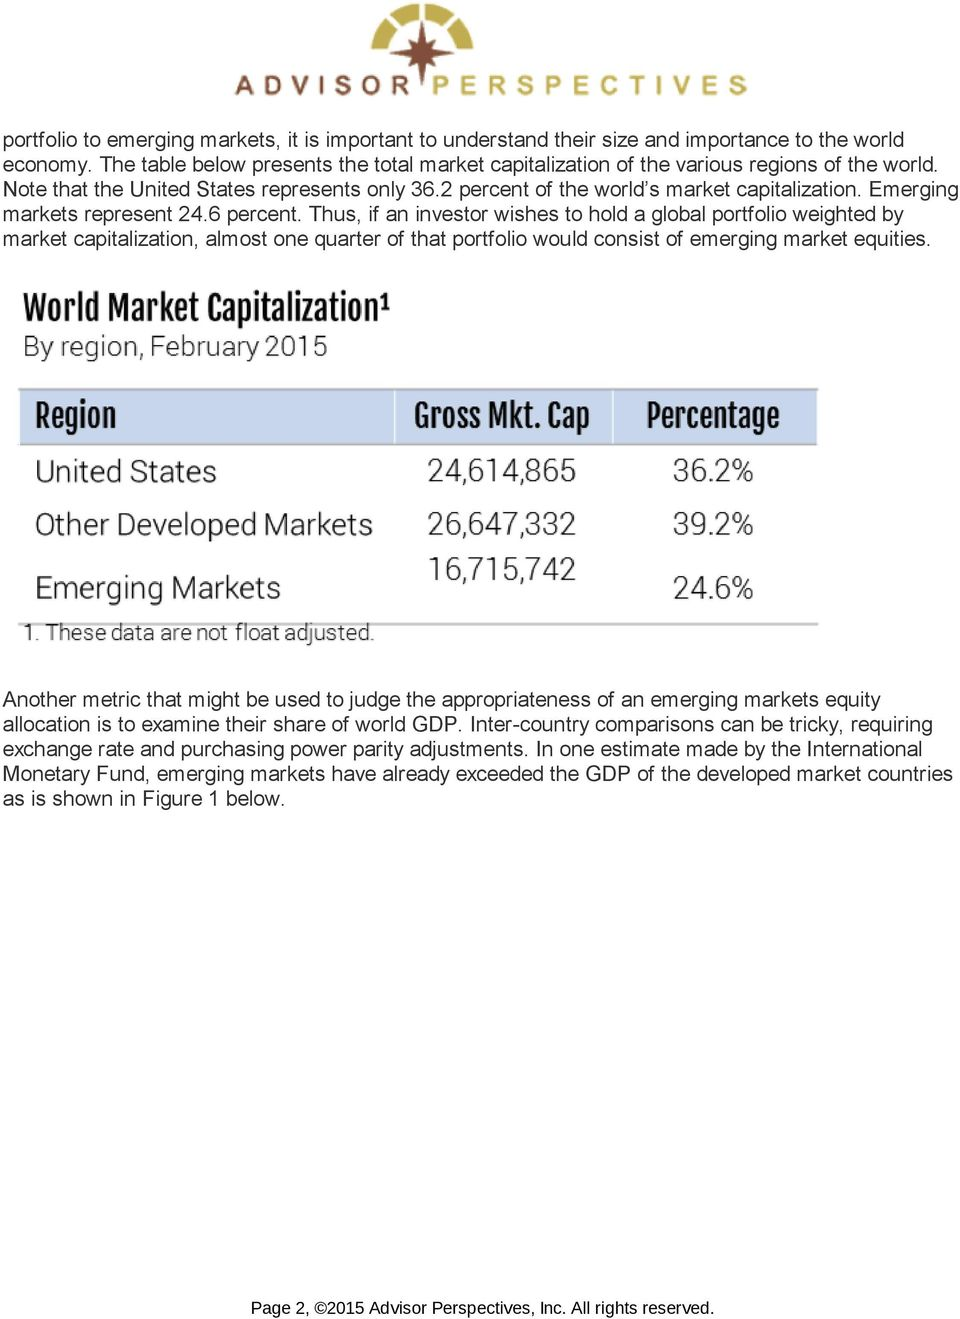 Emerging markets represent 24.6 percent.